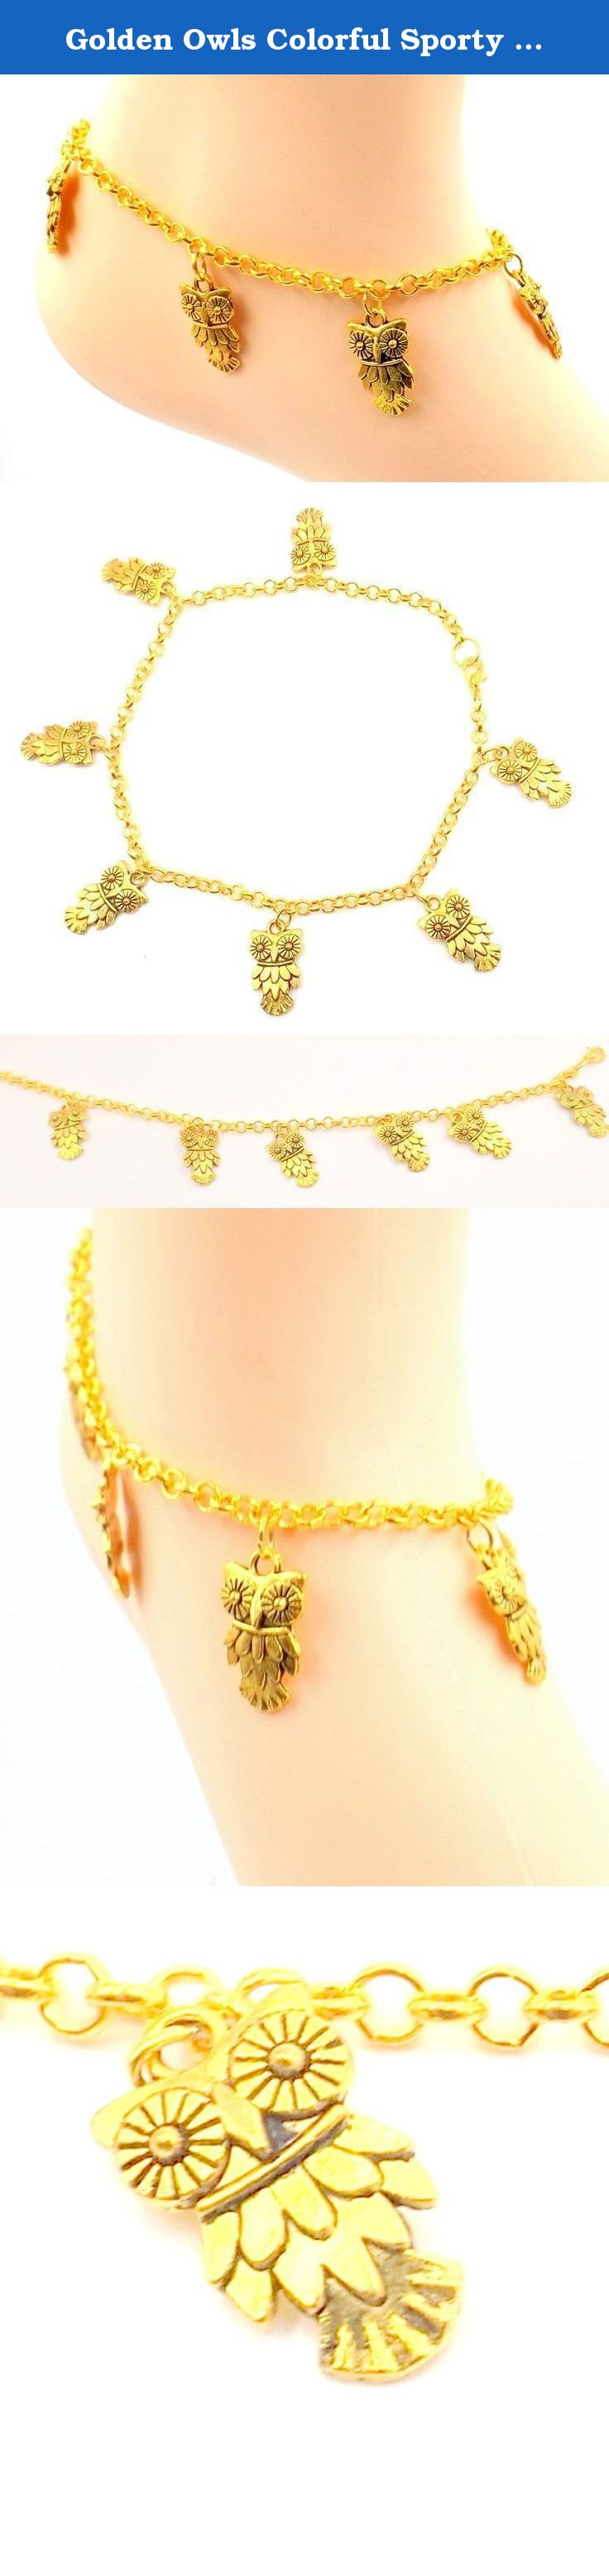 womens jewelry ankle for anklets women bracelets rose flower on wearing anklet bracelet leg tobillo pulsera feet a cheap matching